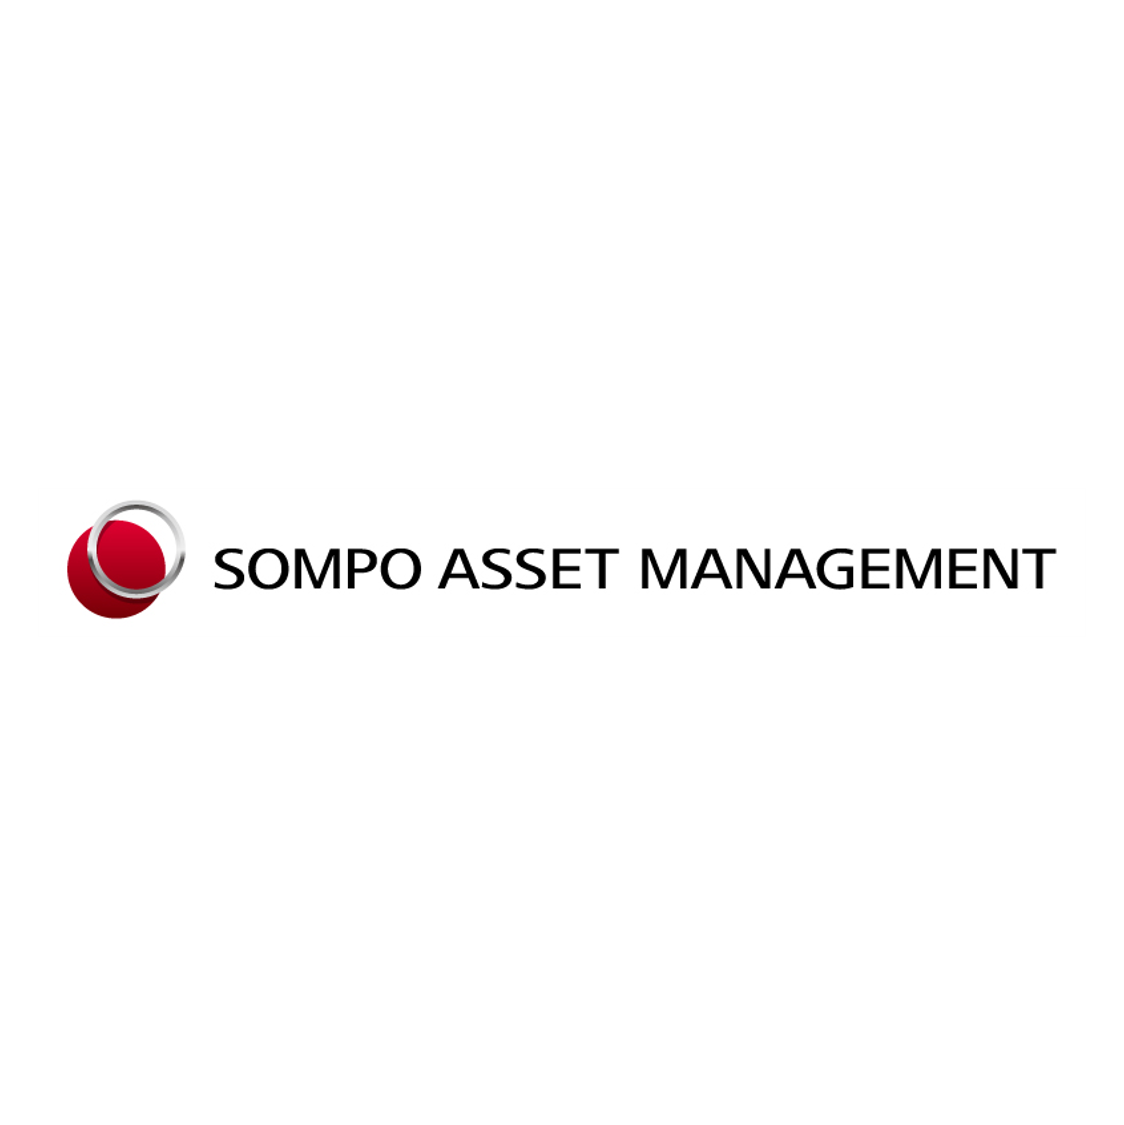 Sompo Asset Management